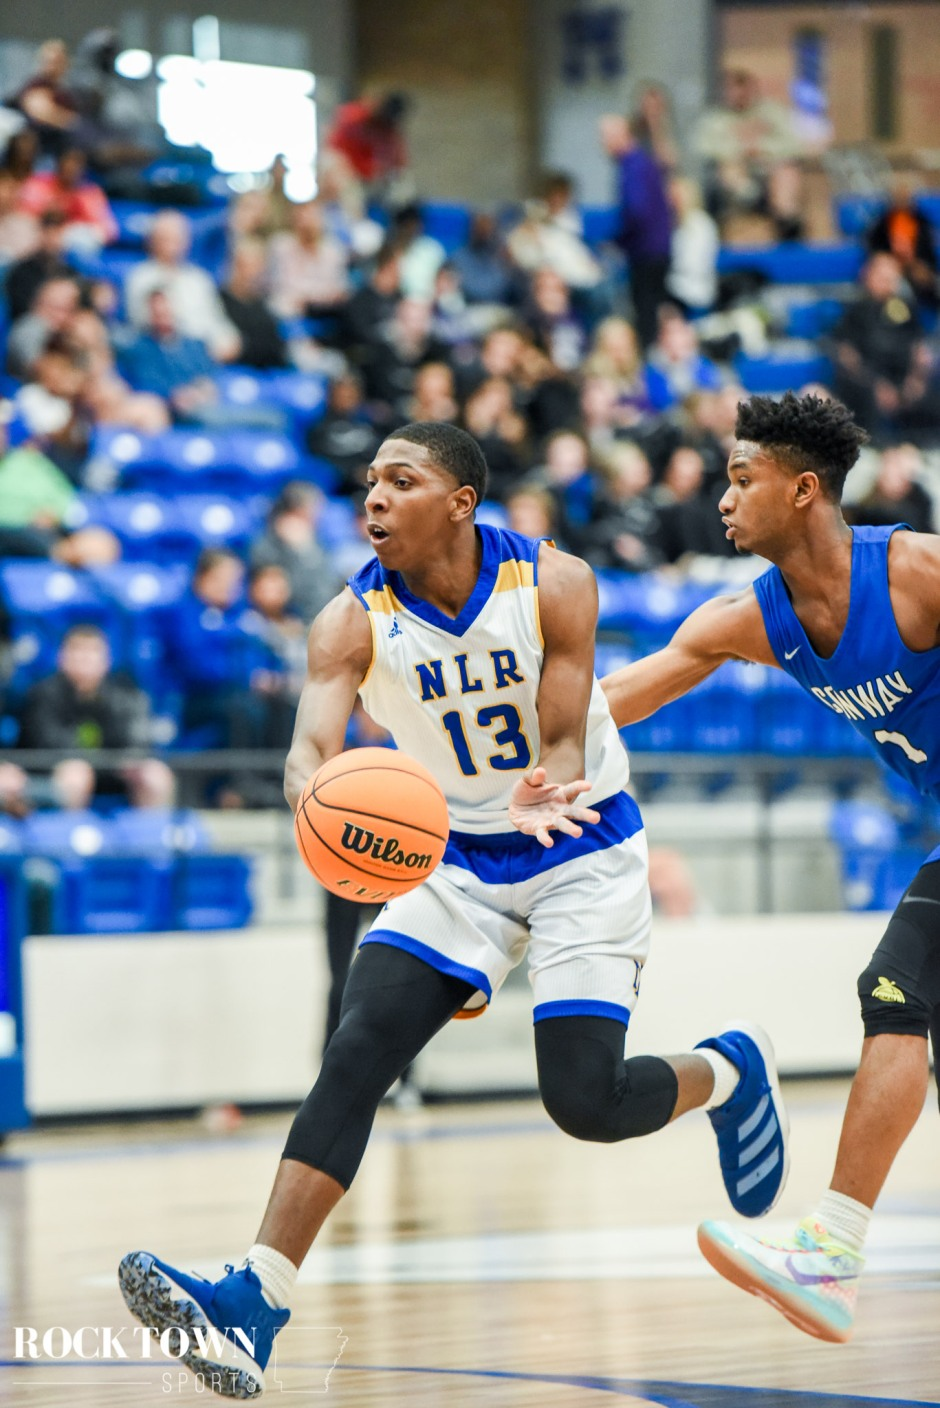 NLR_conway_bball_2020(i)-38